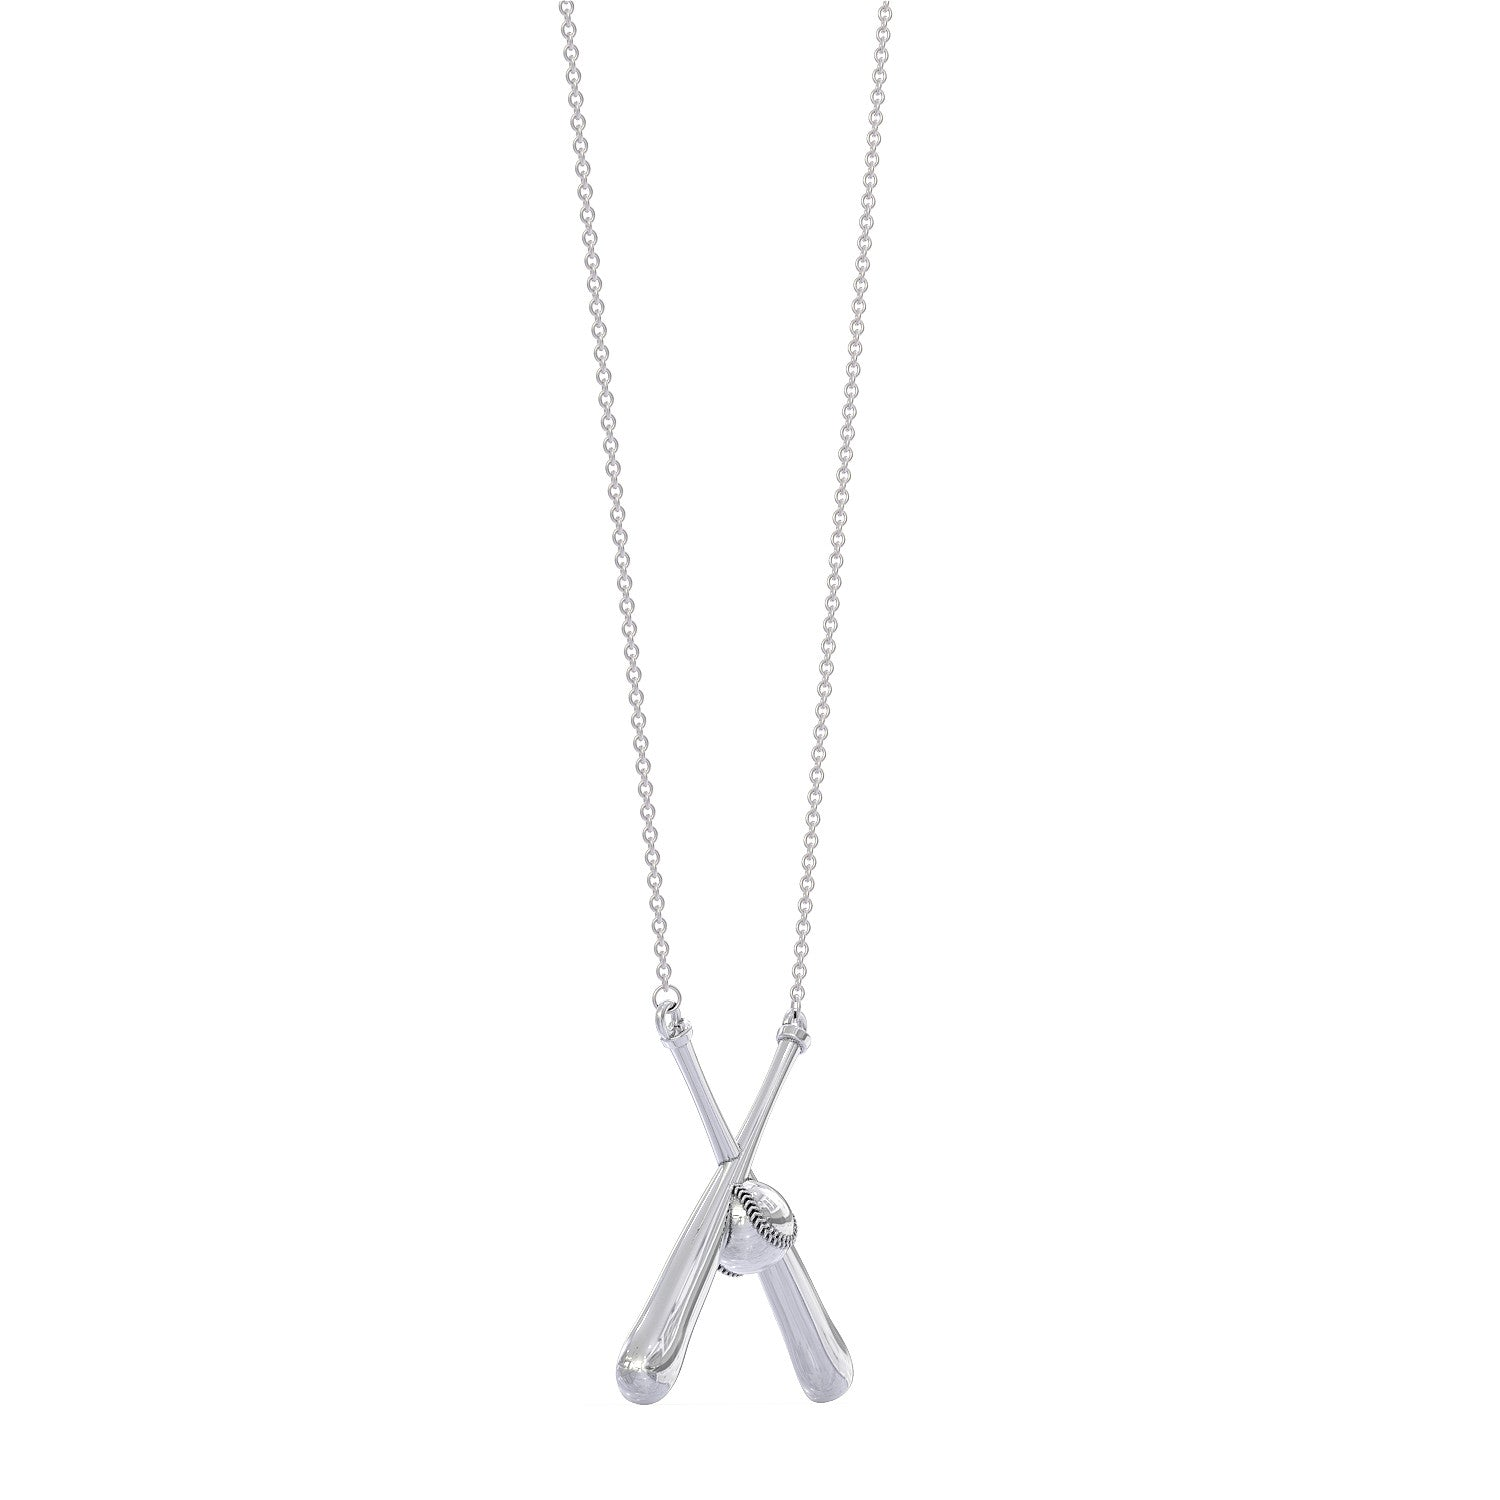 chain cross products inch pendant with baseball number custom silver front fivetool home all in bat plate